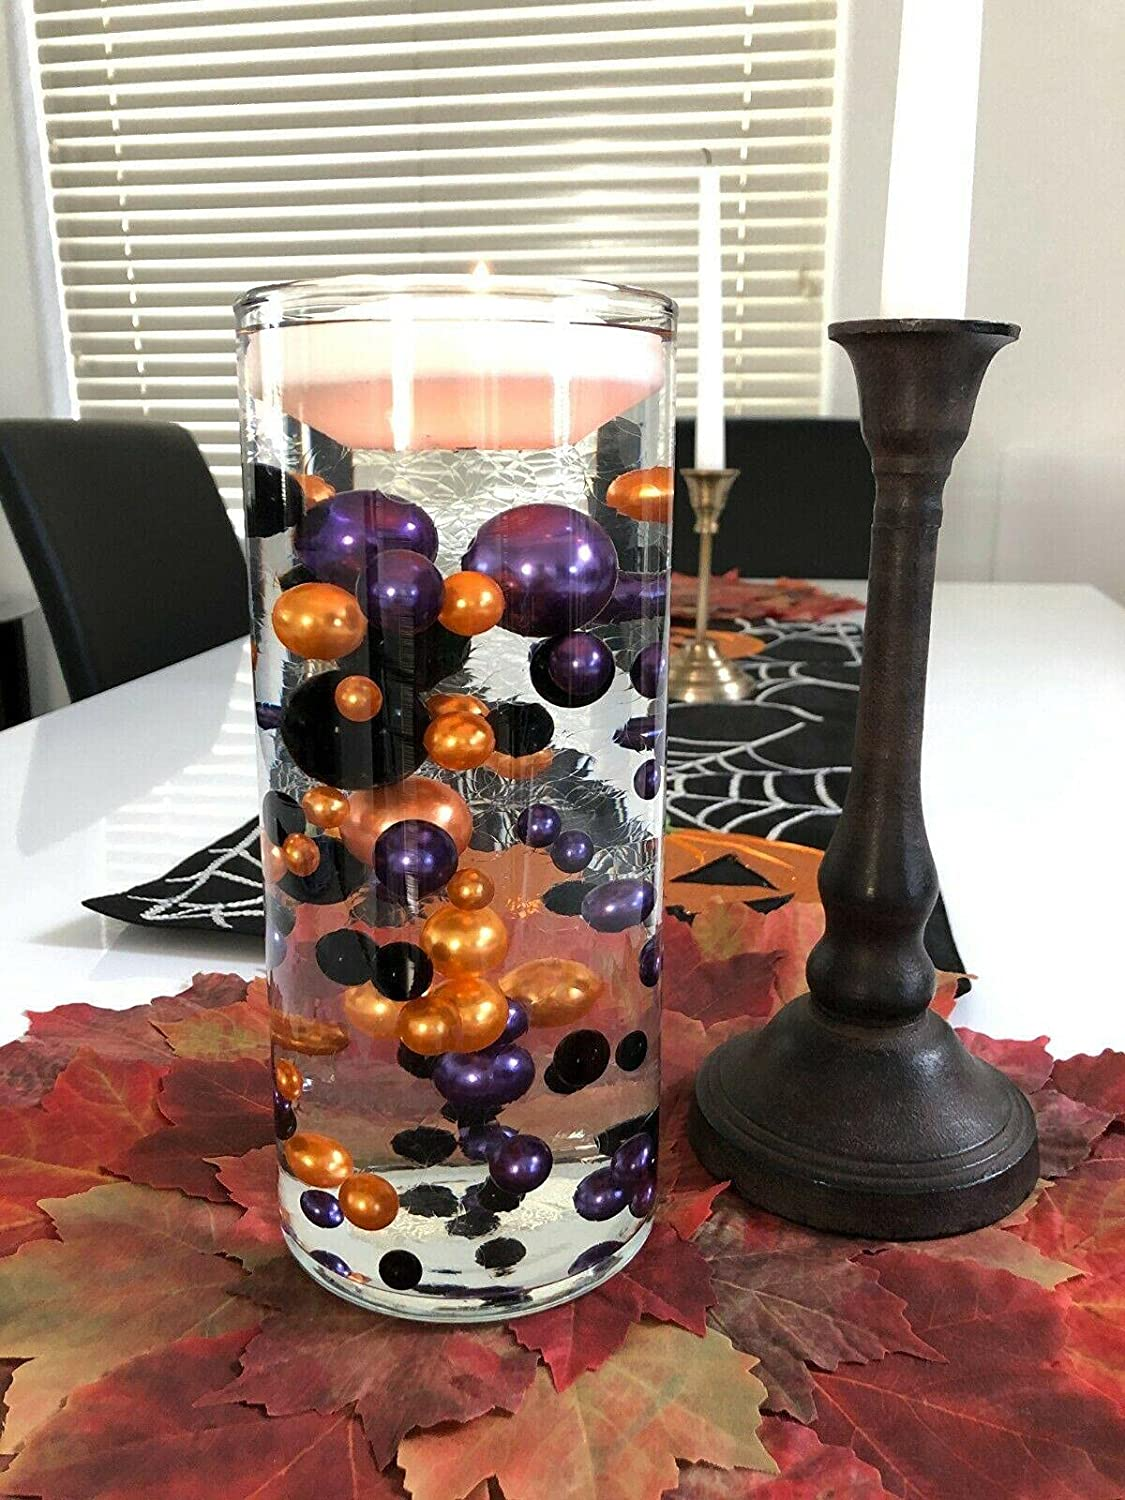 Manato Halloween Table Decors Floating specialty shop Max 71% OFF Pearls No Ho Centerpiece